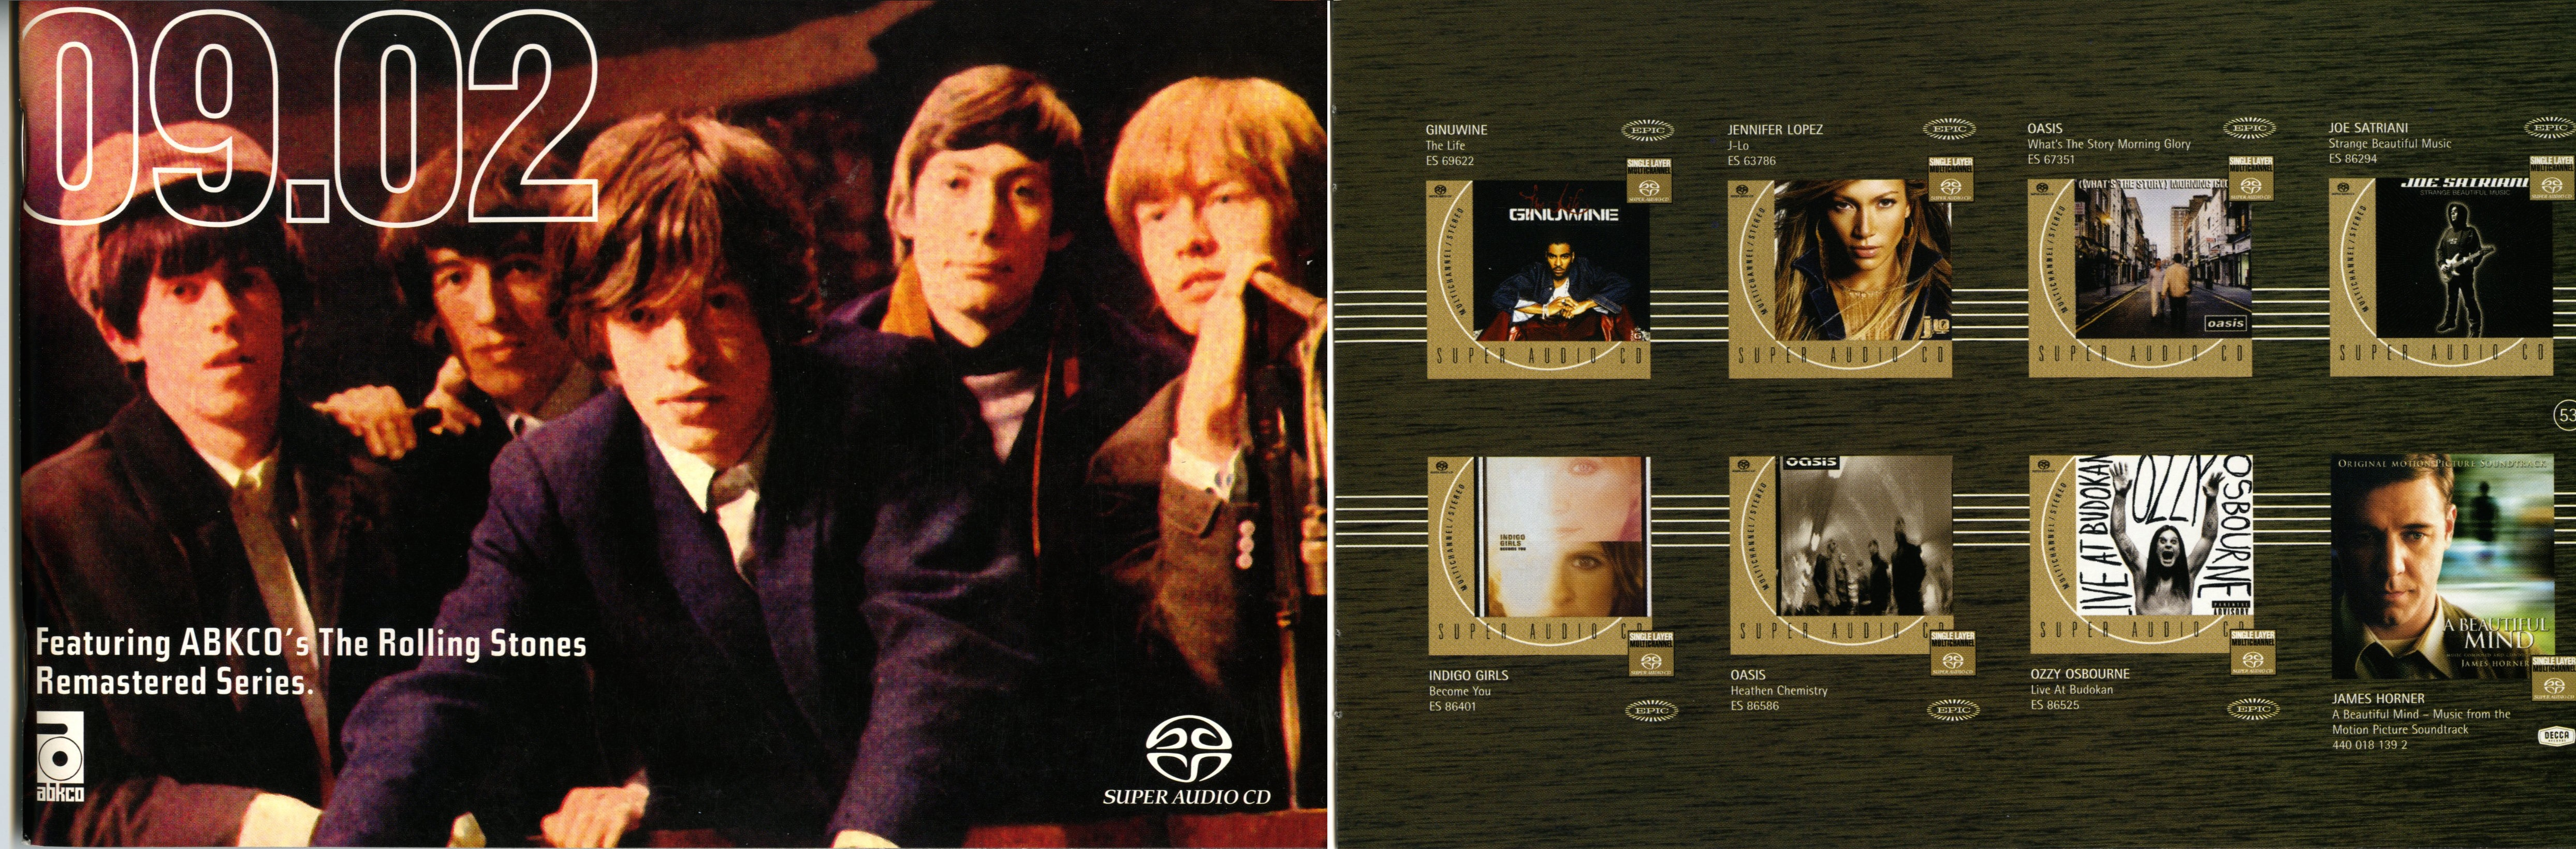 Oasis in Sony's Super Audio CD catalogue for February 2002. The planned SACD release of Heathen Chemistry was never released. Scans courtesy Charger of the Steve Hoffman Music Forum